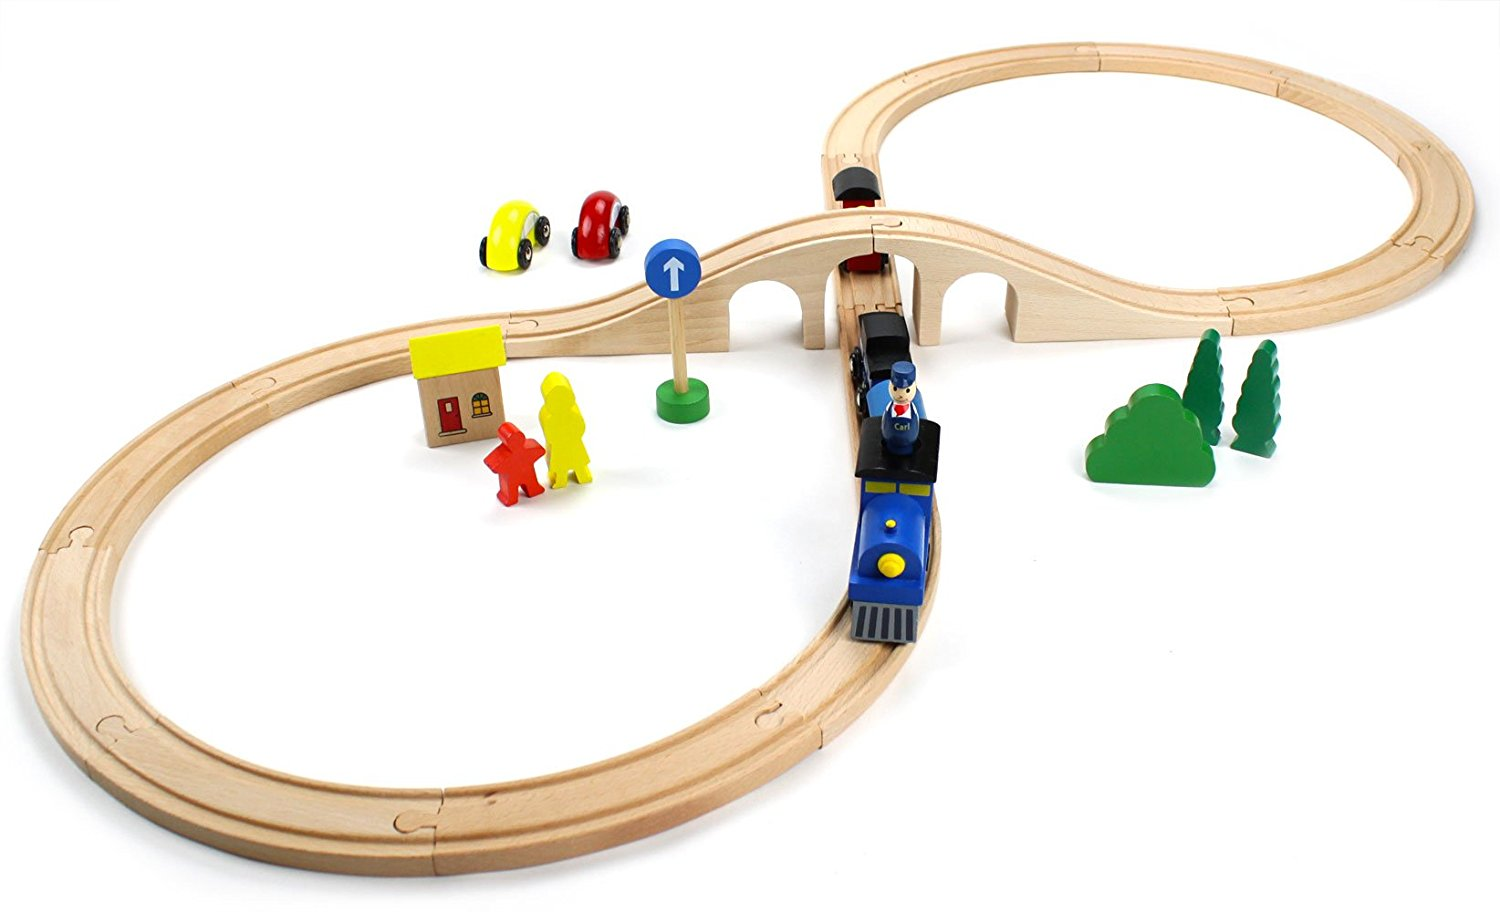 451 Train Track free clipart.